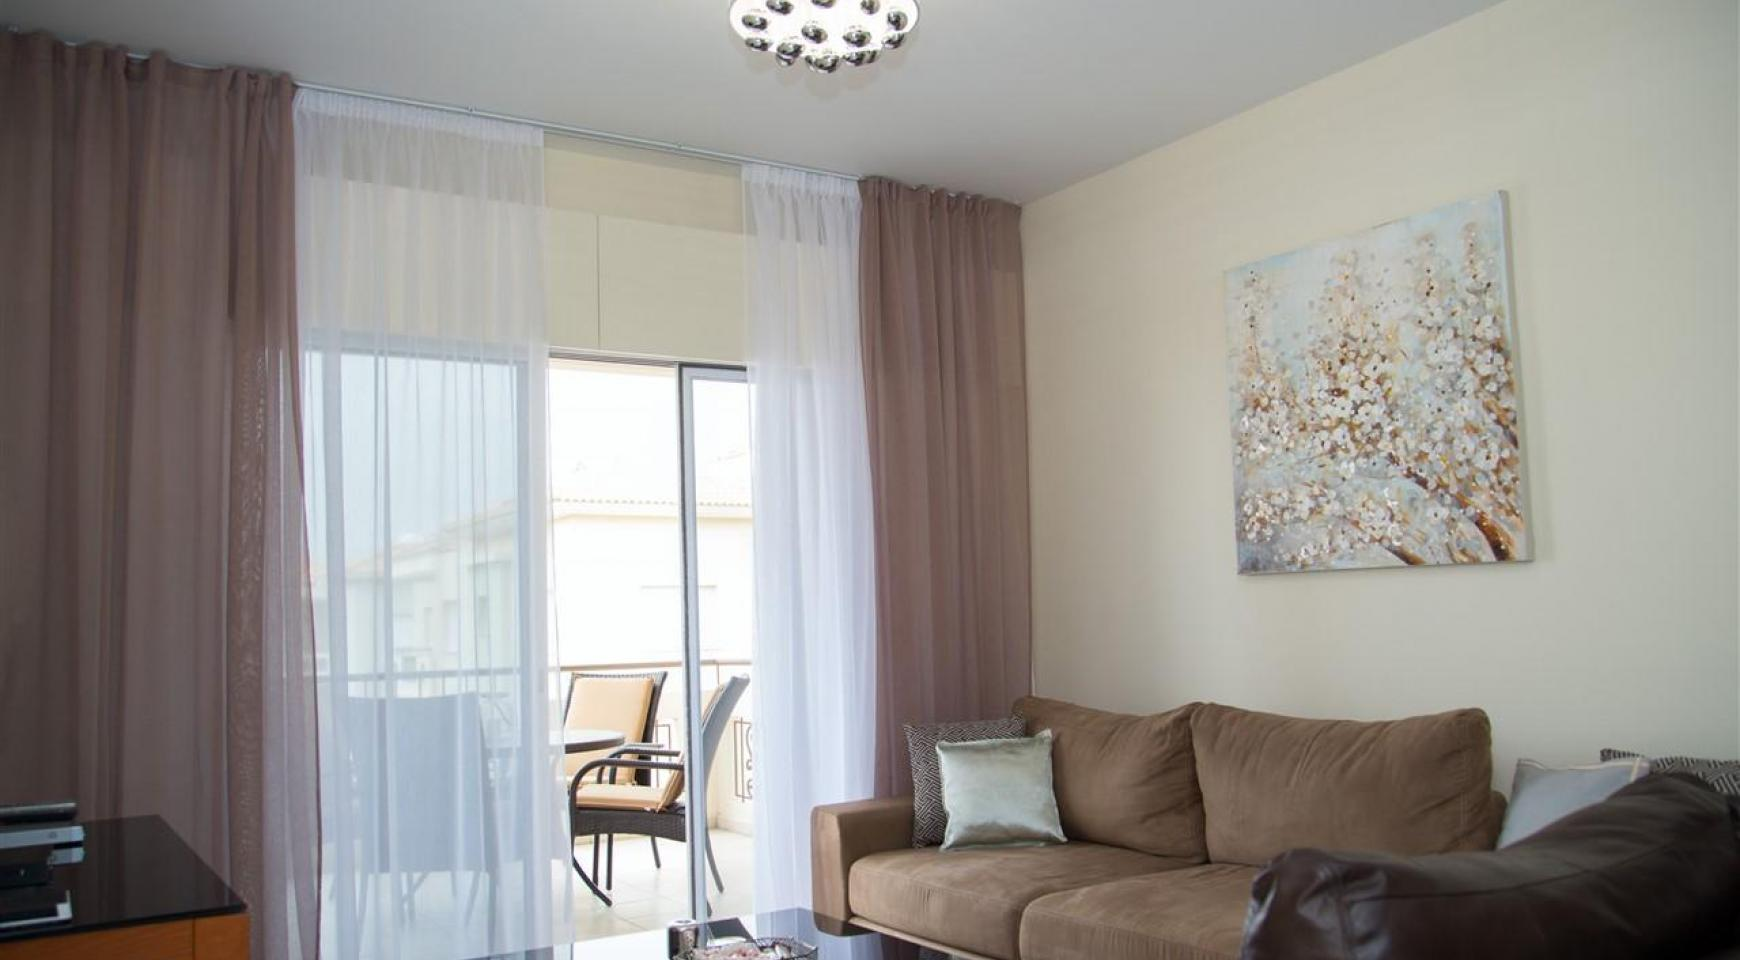 2 Bedroom Apartment in the Complex near the Sea - 5